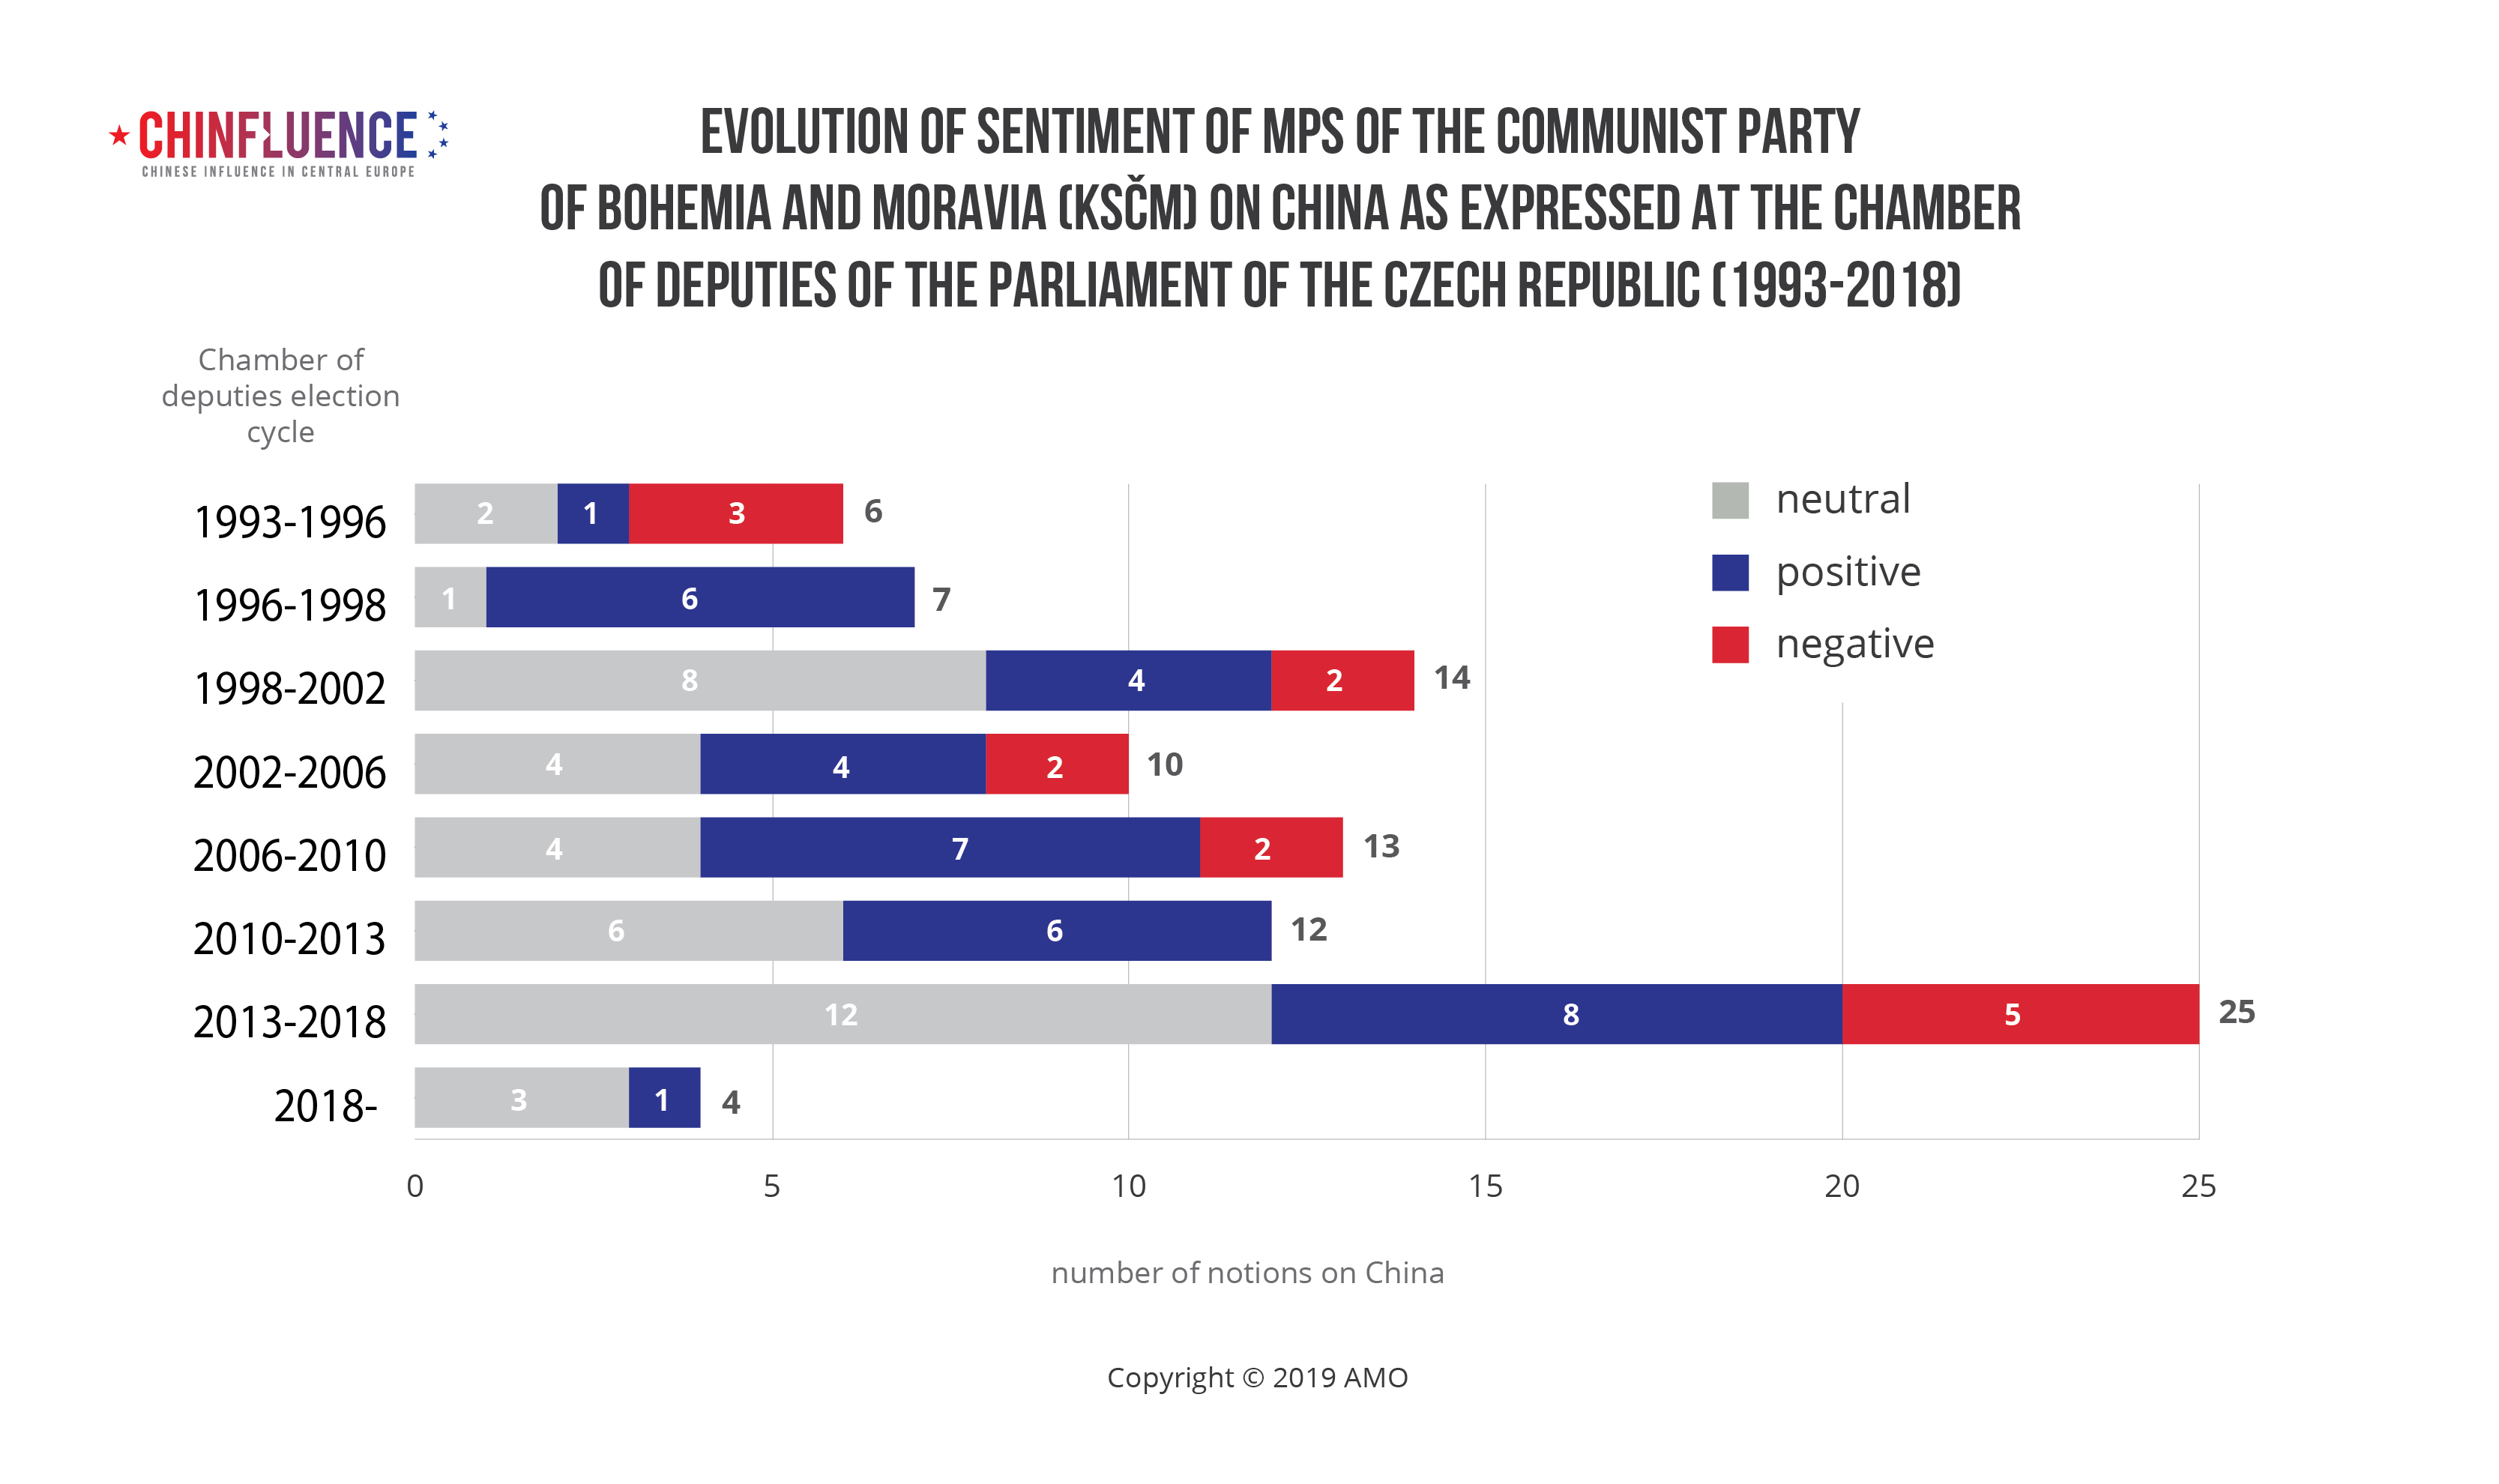 Evolution of sentiment of MPs of the Communist Party of Bohemia and Moravia (KSCM) on China as expressed at the Chamber of Deputies of the Parliament of the Czech Republic (1993-2018)-01